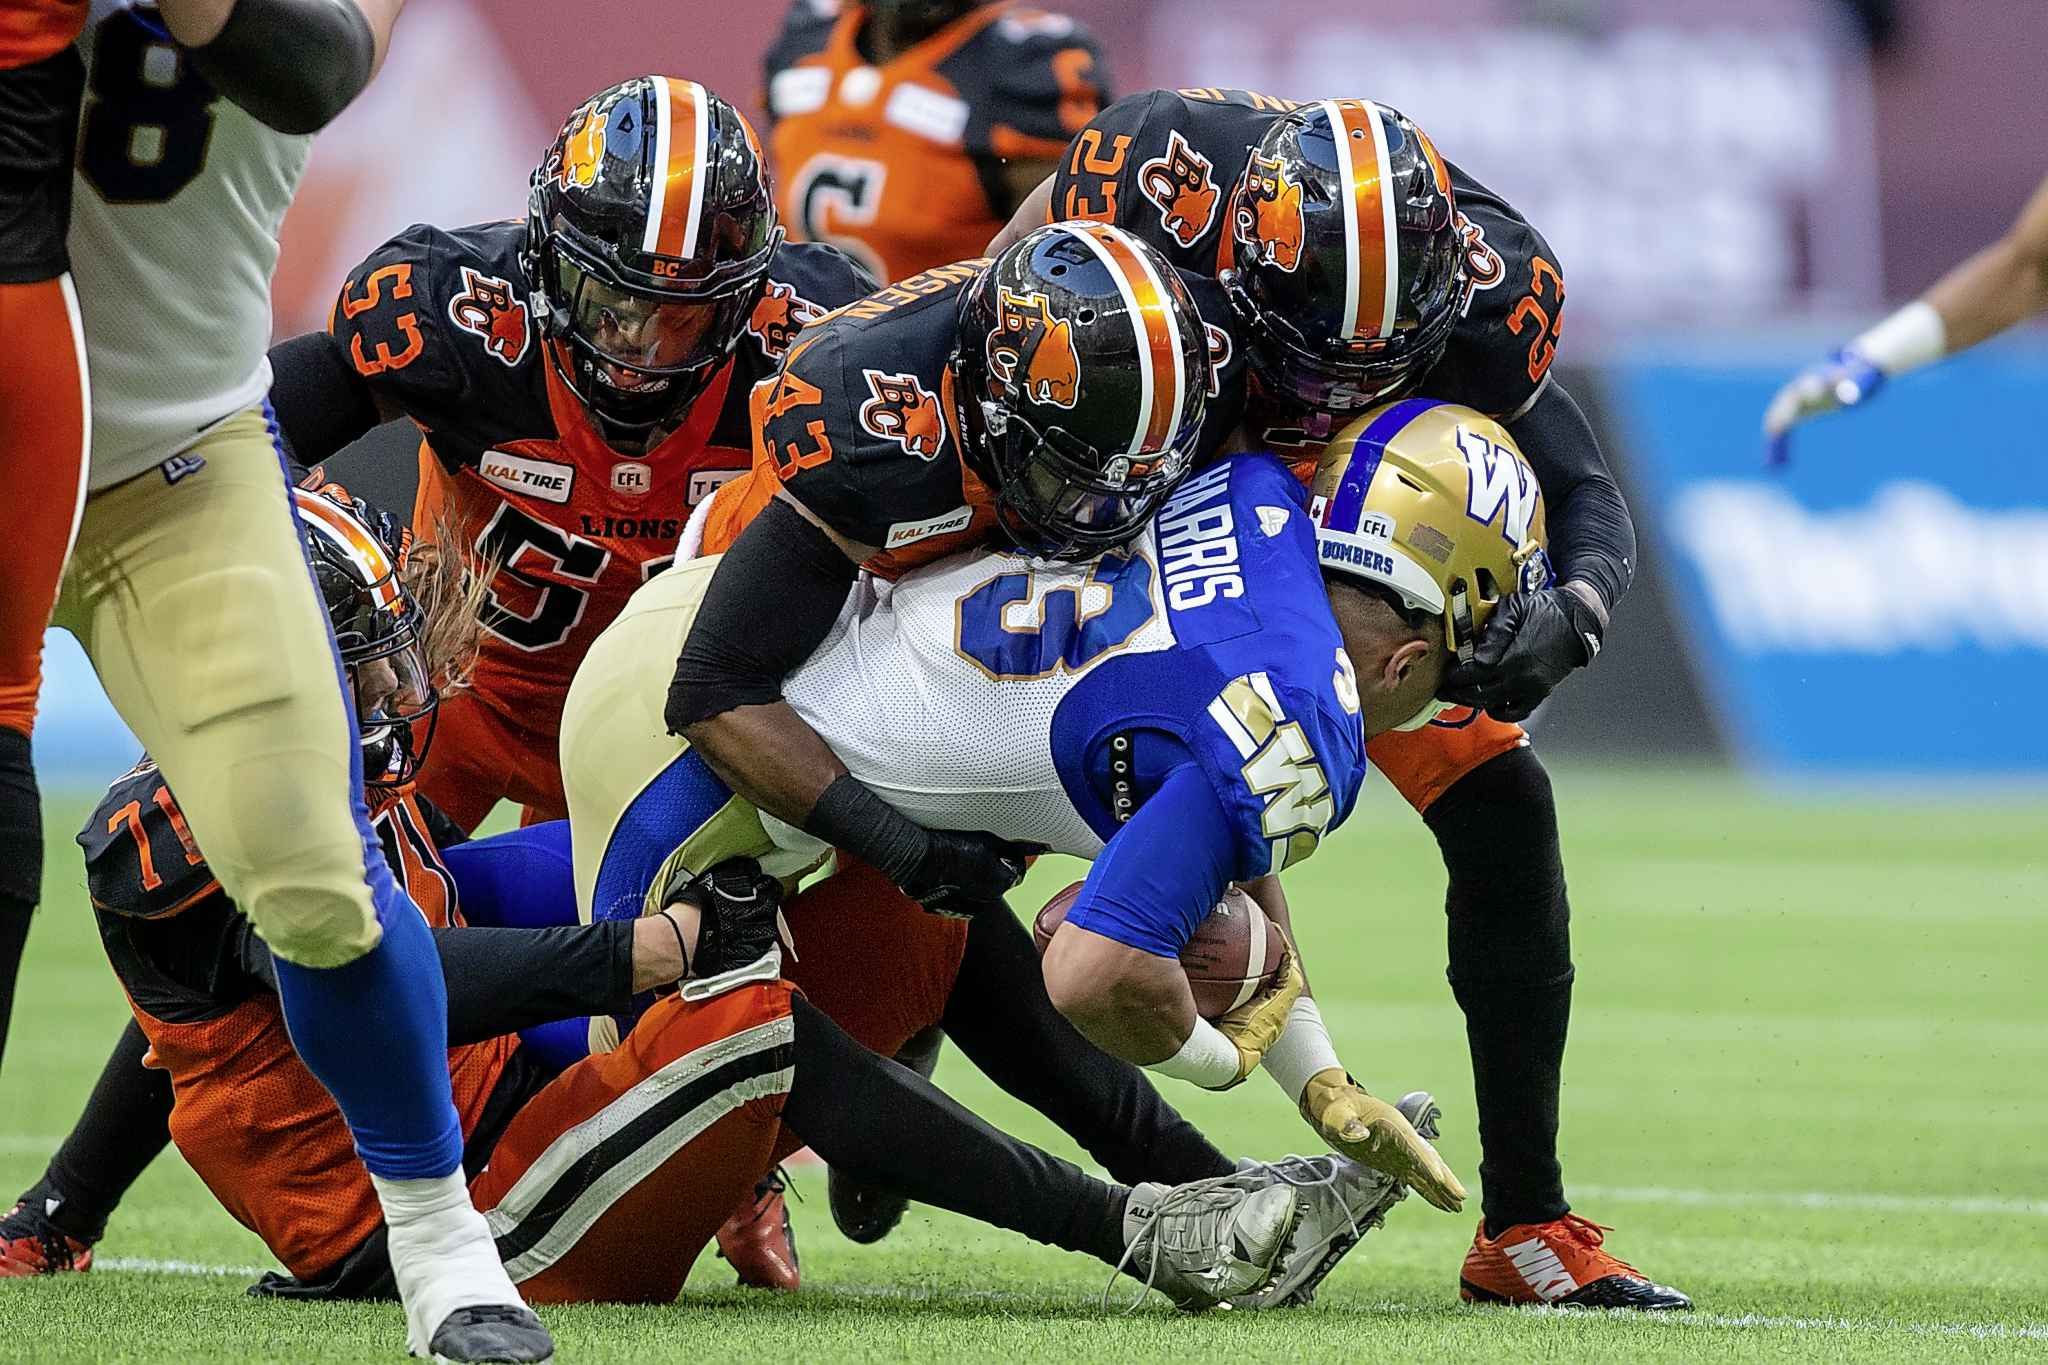 BEN NELMS / THE CANADIAN PRESS</p><p>Winnipeg Blue Bombers running back Andrew Harris (33) is tackled by B.C. Lions defensive back Dominique Termansen (43) during the first half.</p>